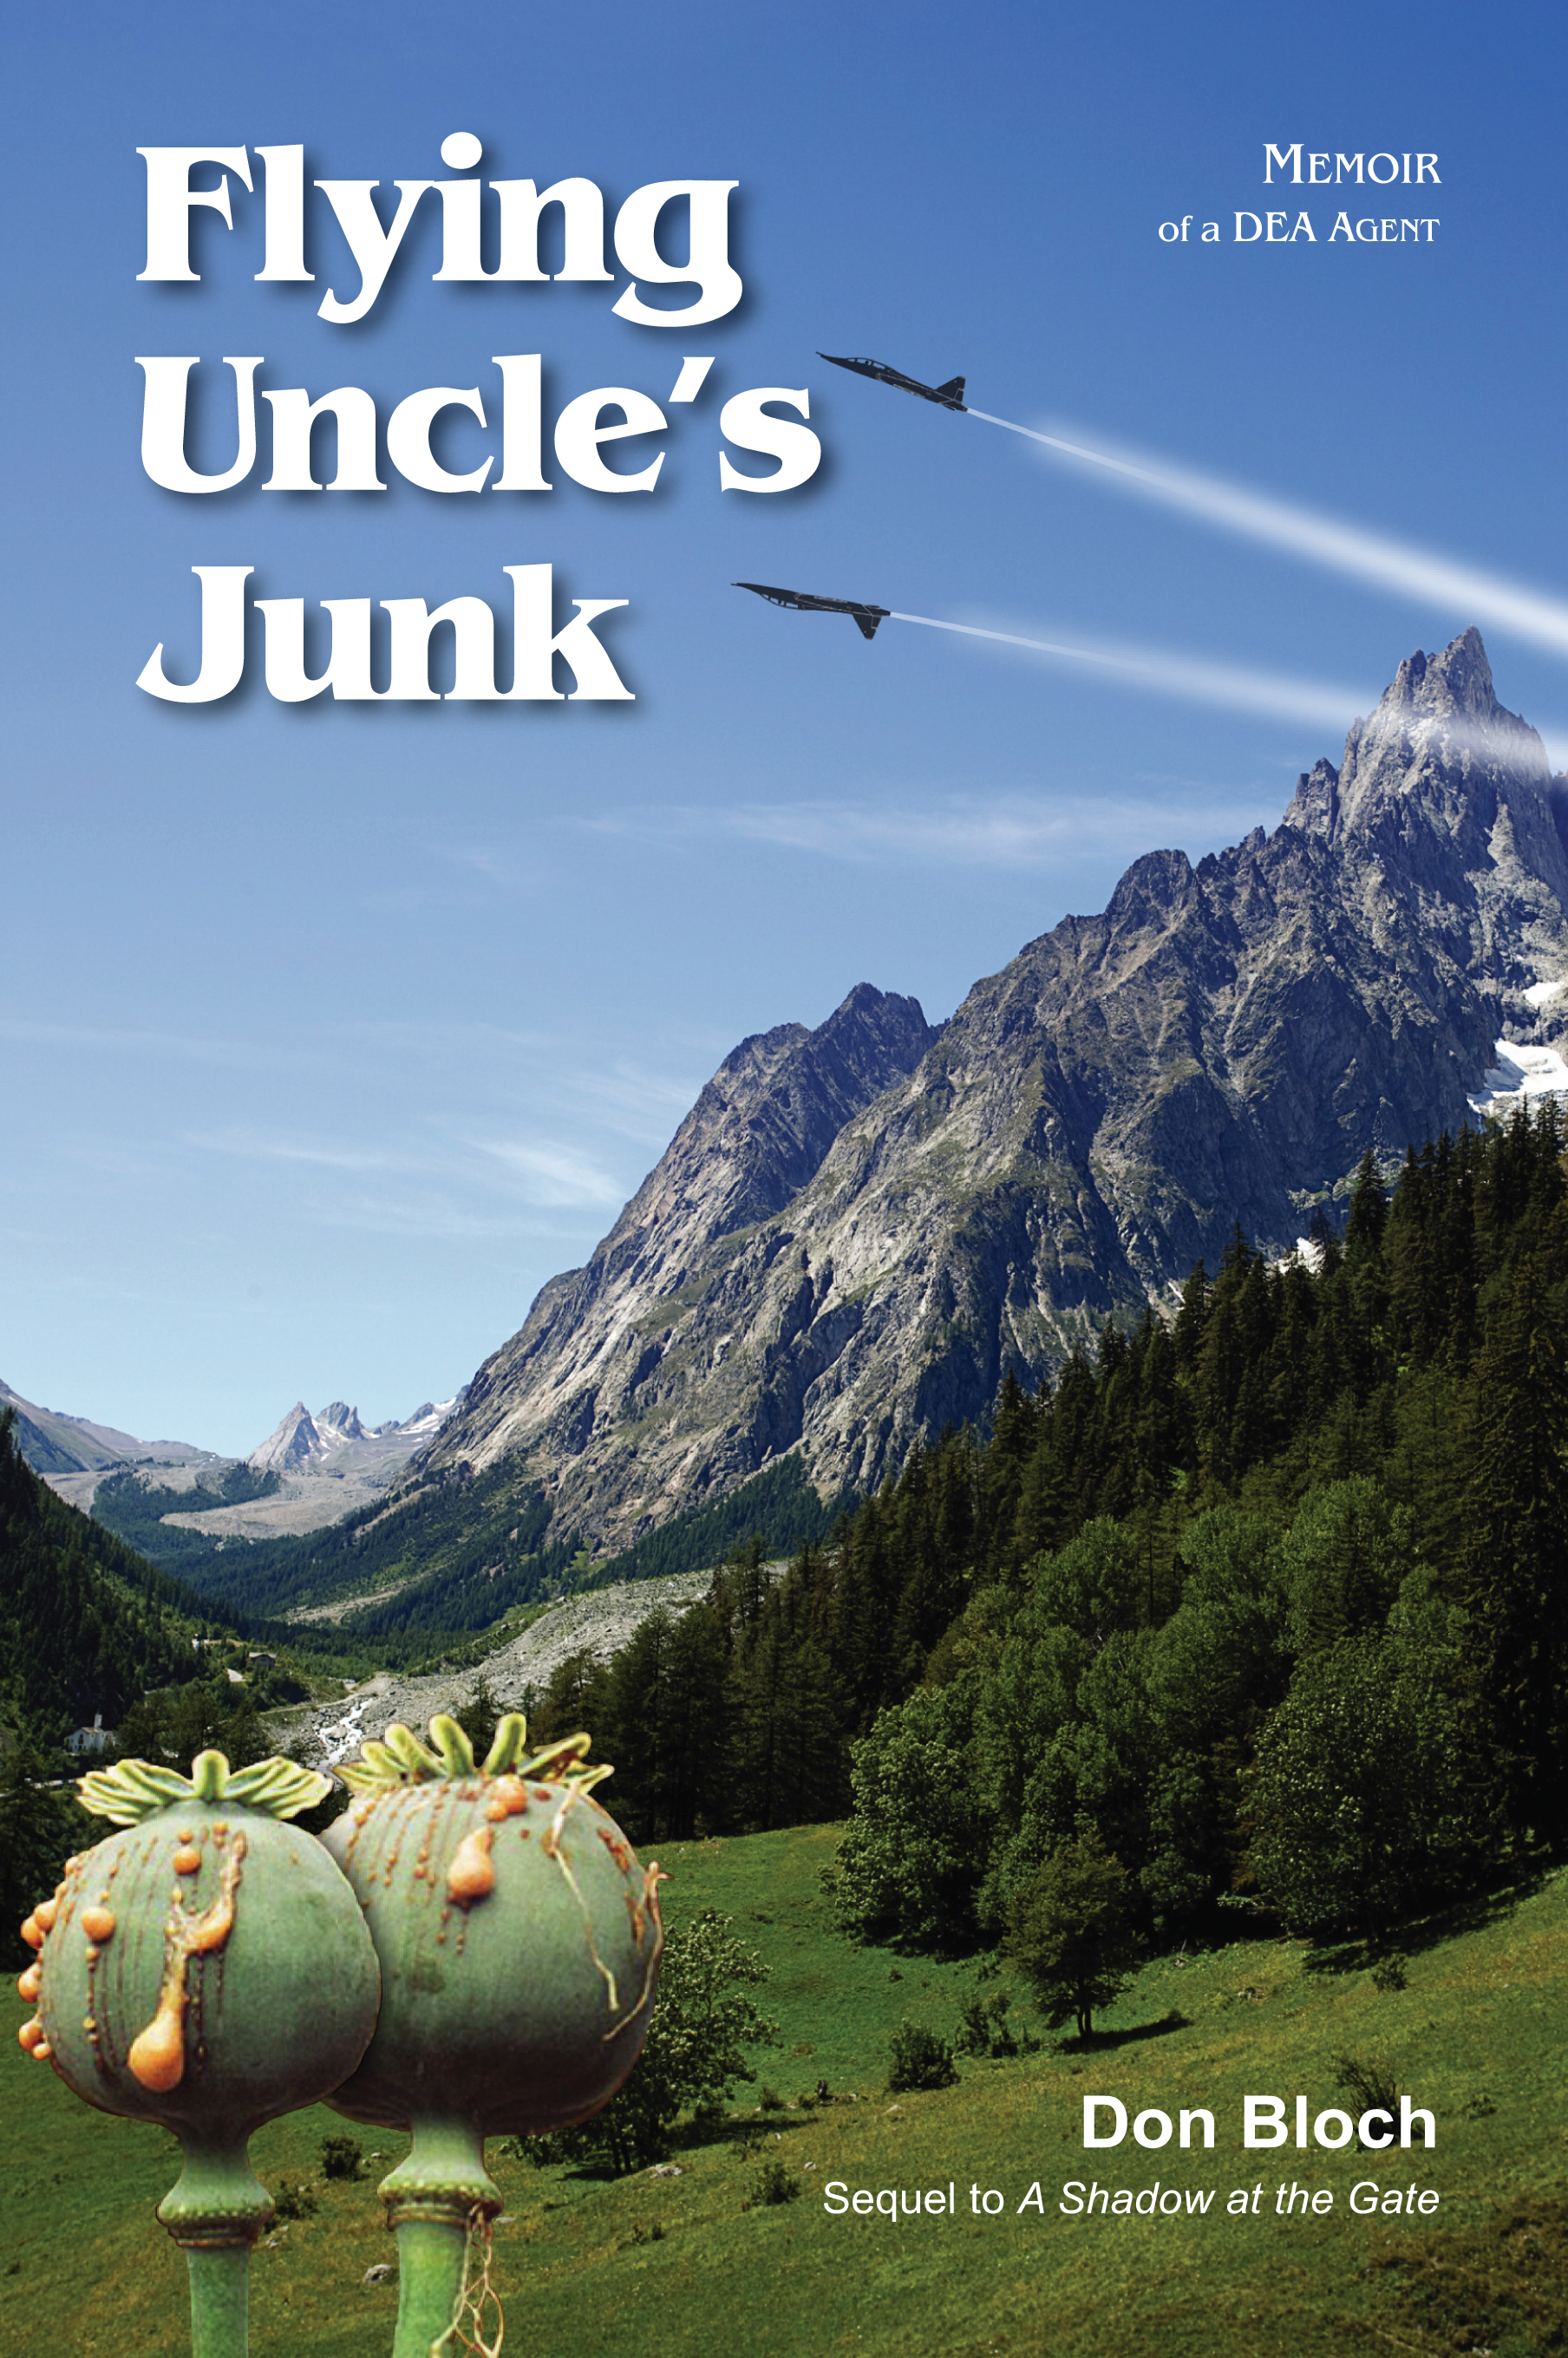 Flying Uncle's Junk